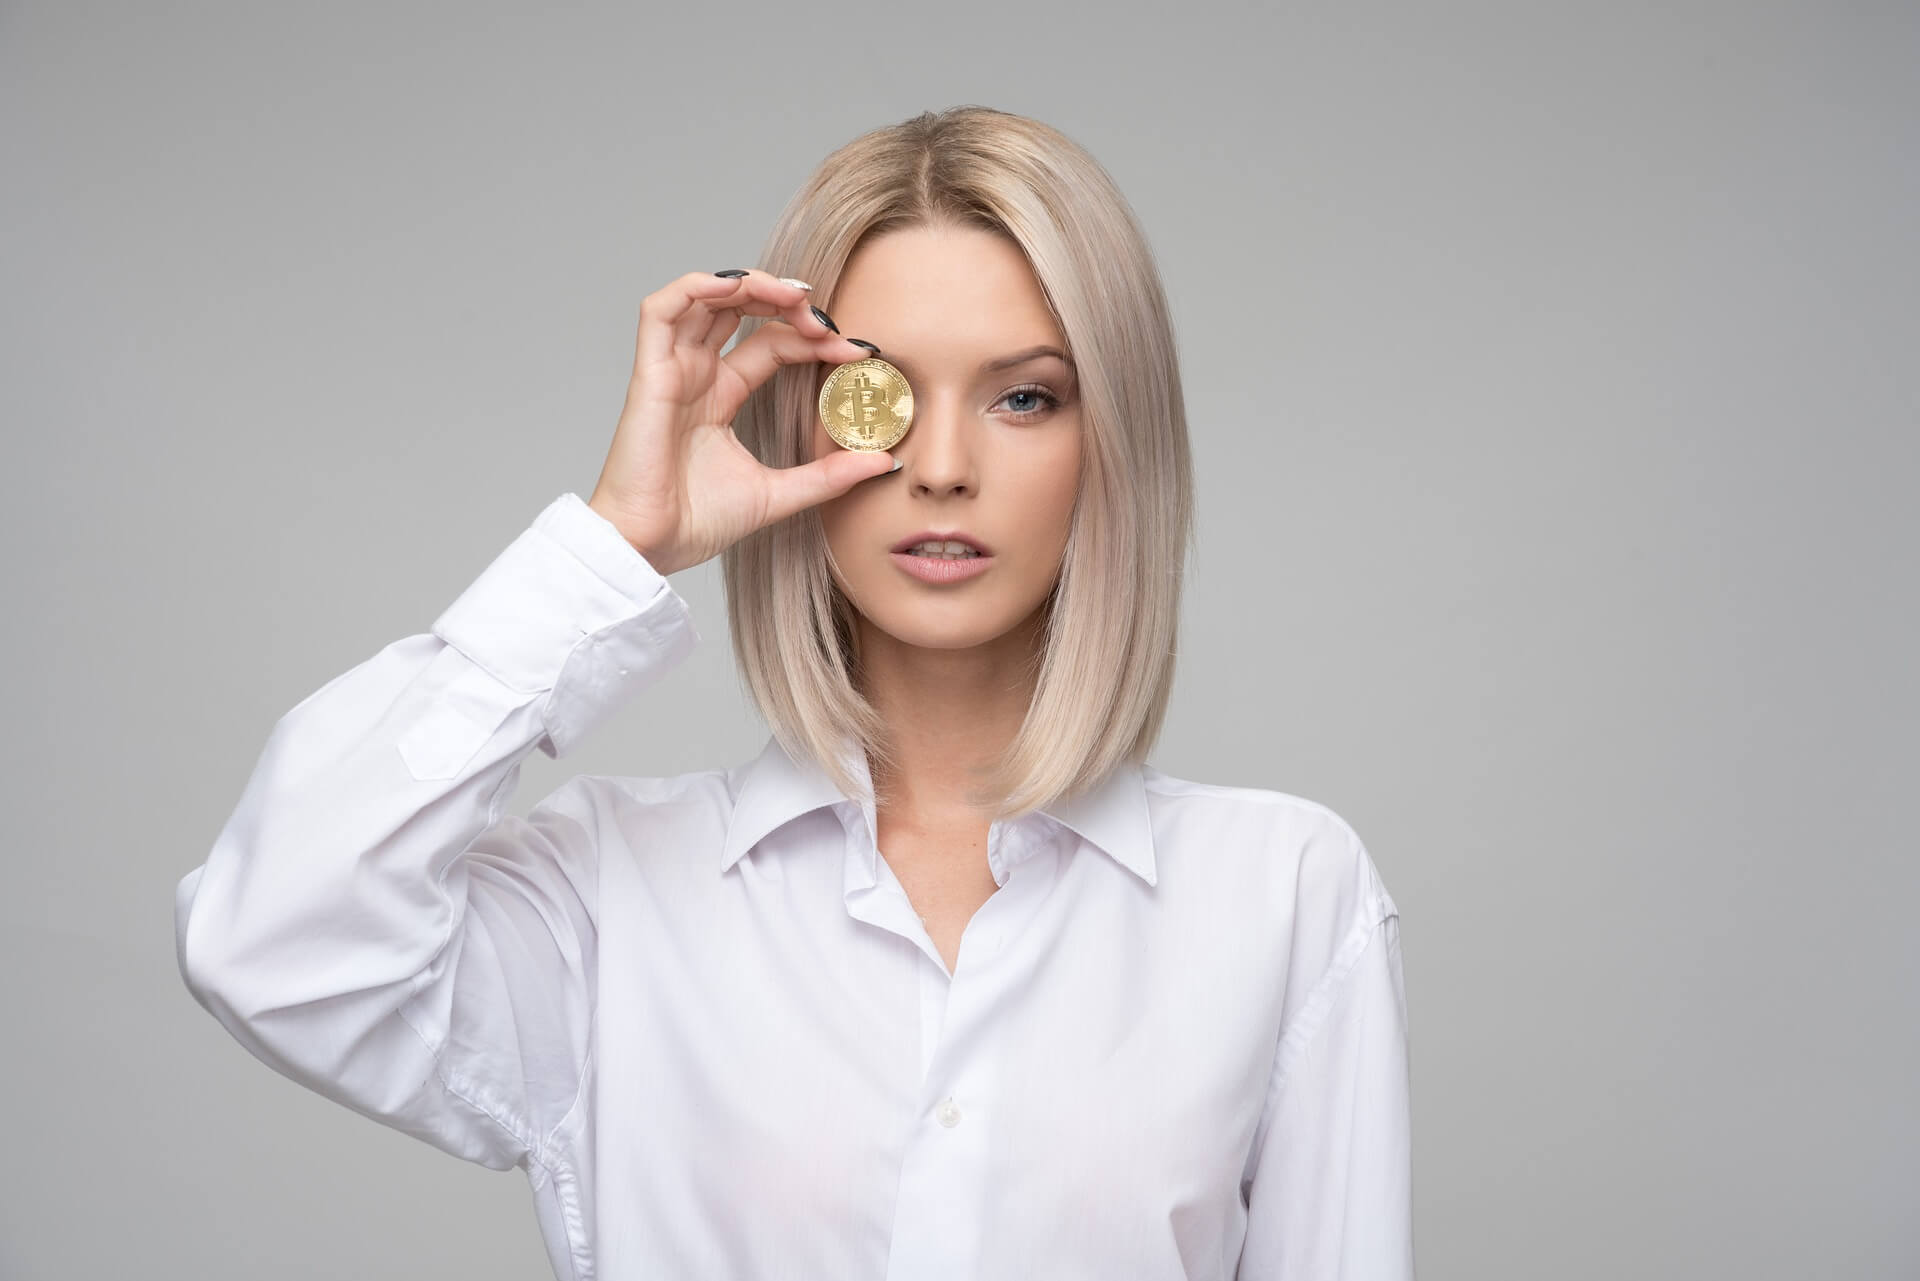 Cheapest Way To Buy Bitcoin UK | Buy Bitcoin With Lowest Fees